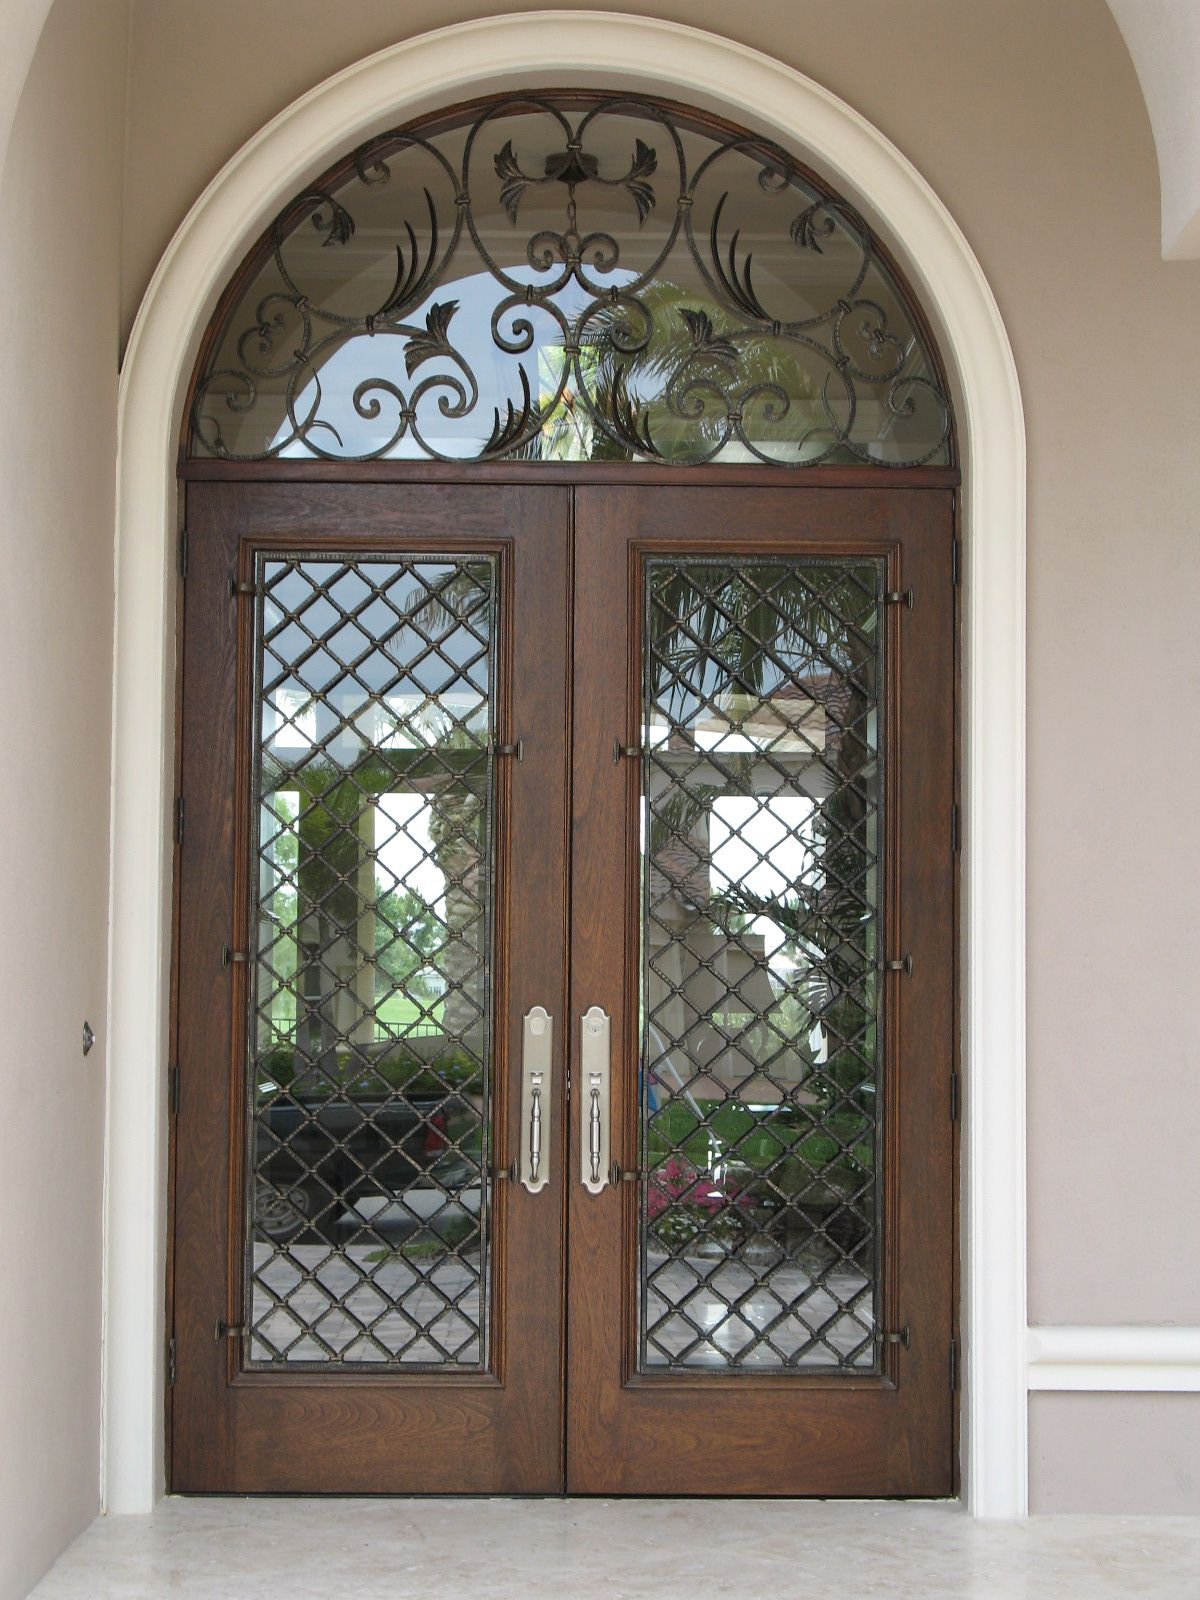 1600 #4C6A7F Wooden Doors Interior French Doors Entrance Doors Entry Gates Iron  pic Wood Wrought Iron Doors 43111200